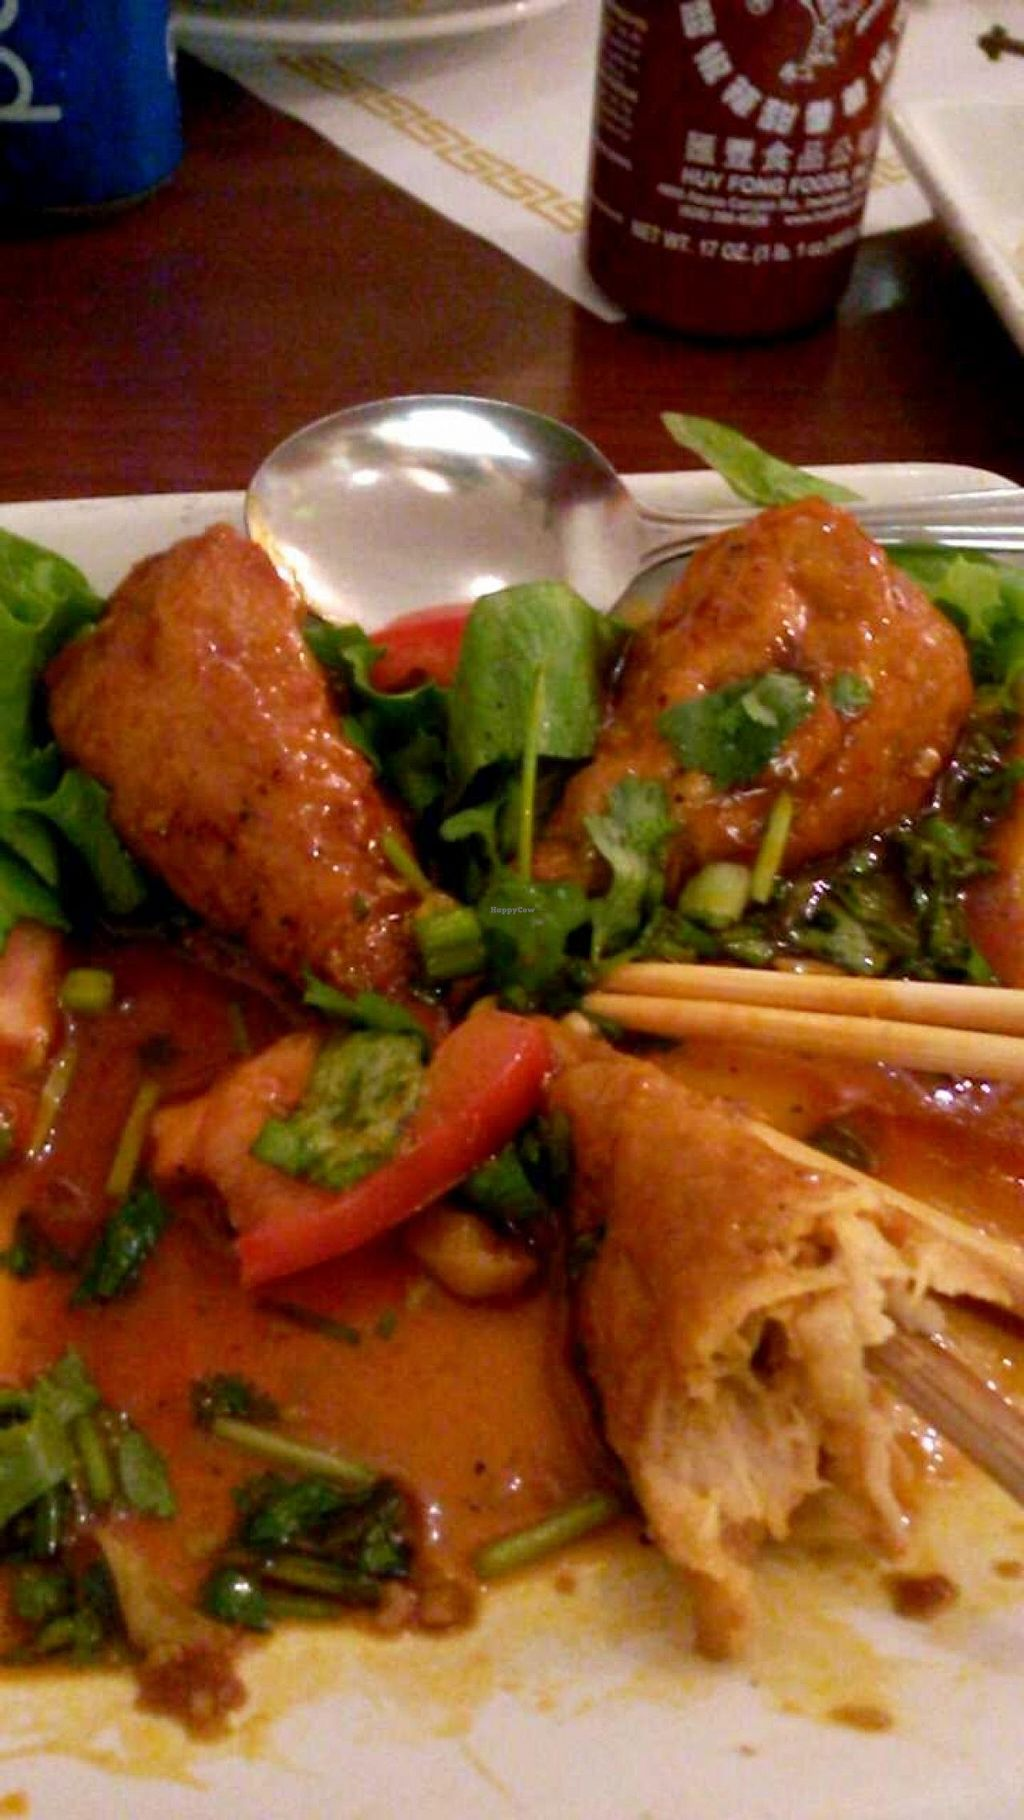 """Photo of Thuyen Vien  by <a href=""""/members/profile/LiilyPadd"""">LiilyPadd</a> <br/>Chicken plum drumsticks <br/> February 2, 2015  - <a href='/contact/abuse/image/23785/91990'>Report</a>"""